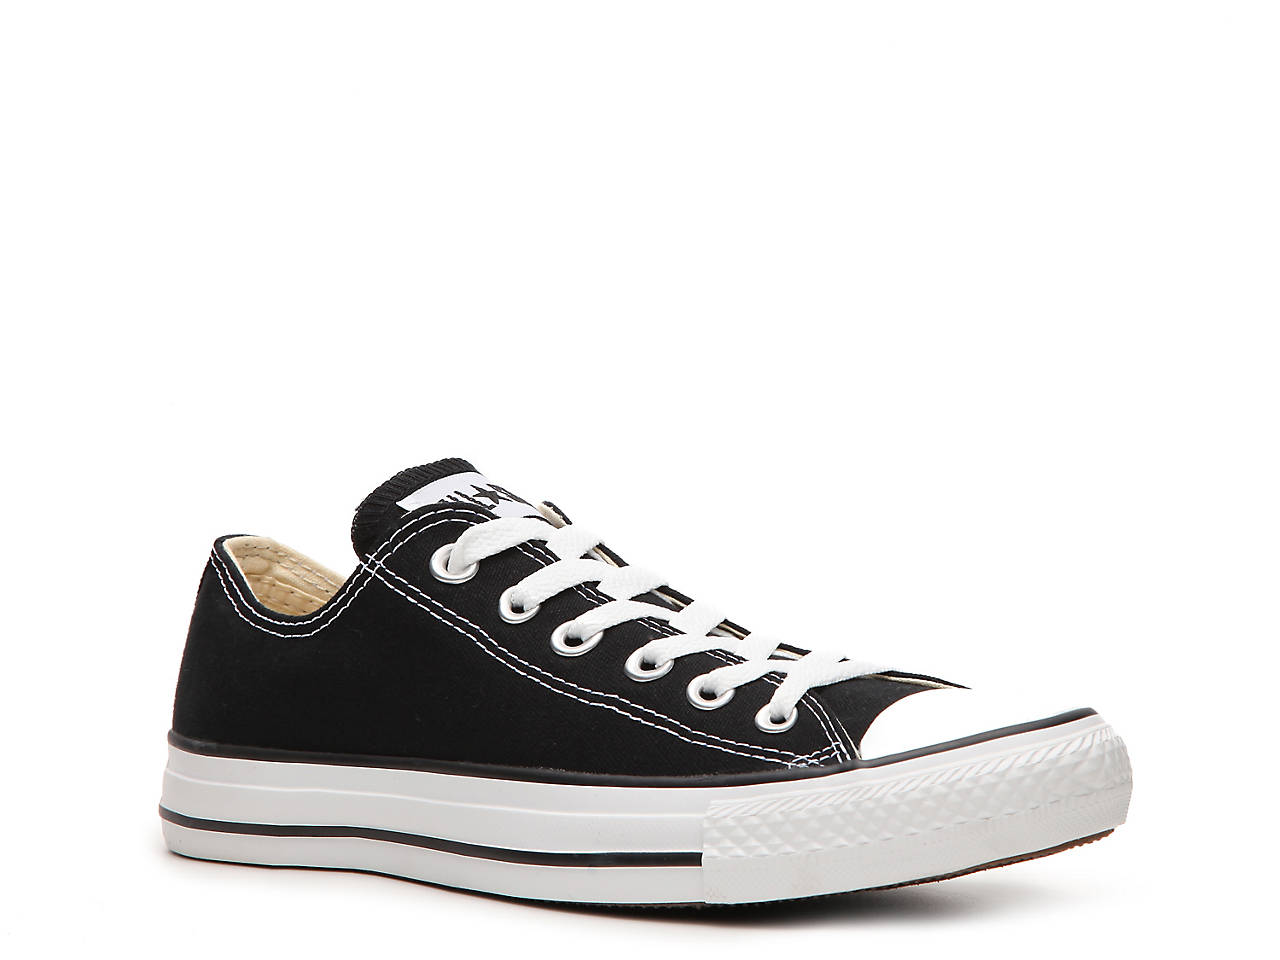 15c534357e36 Converse Chuck Taylor All Star Sneaker - Women s Women s Shoes